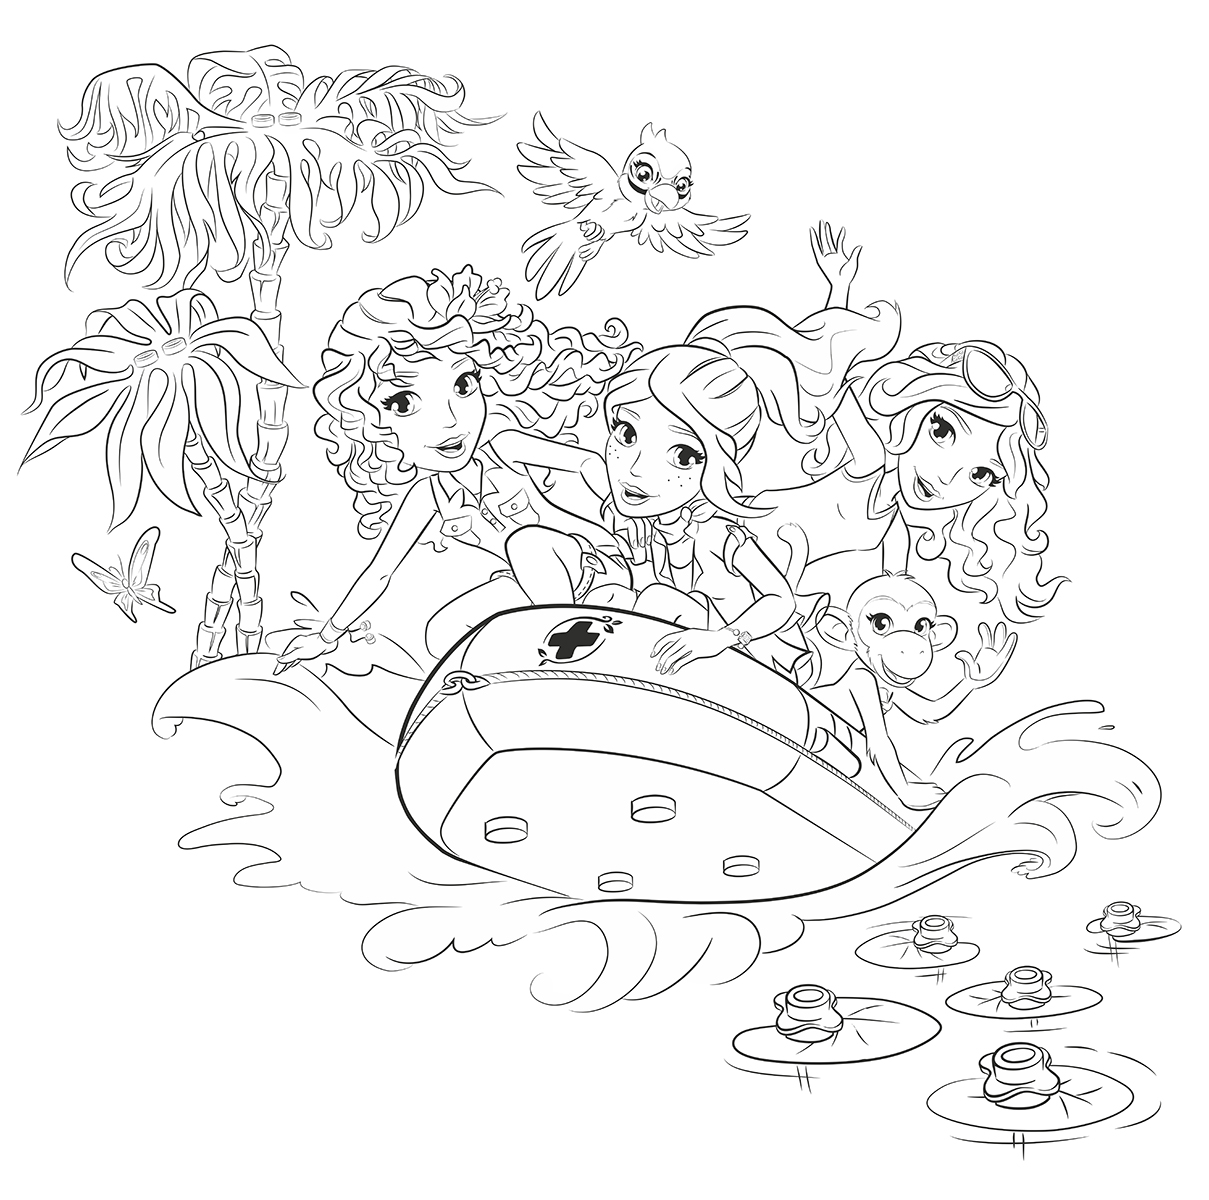 coloring pages of lego friends lego friends coloring pages best coloring pages for kids pages lego coloring friends of